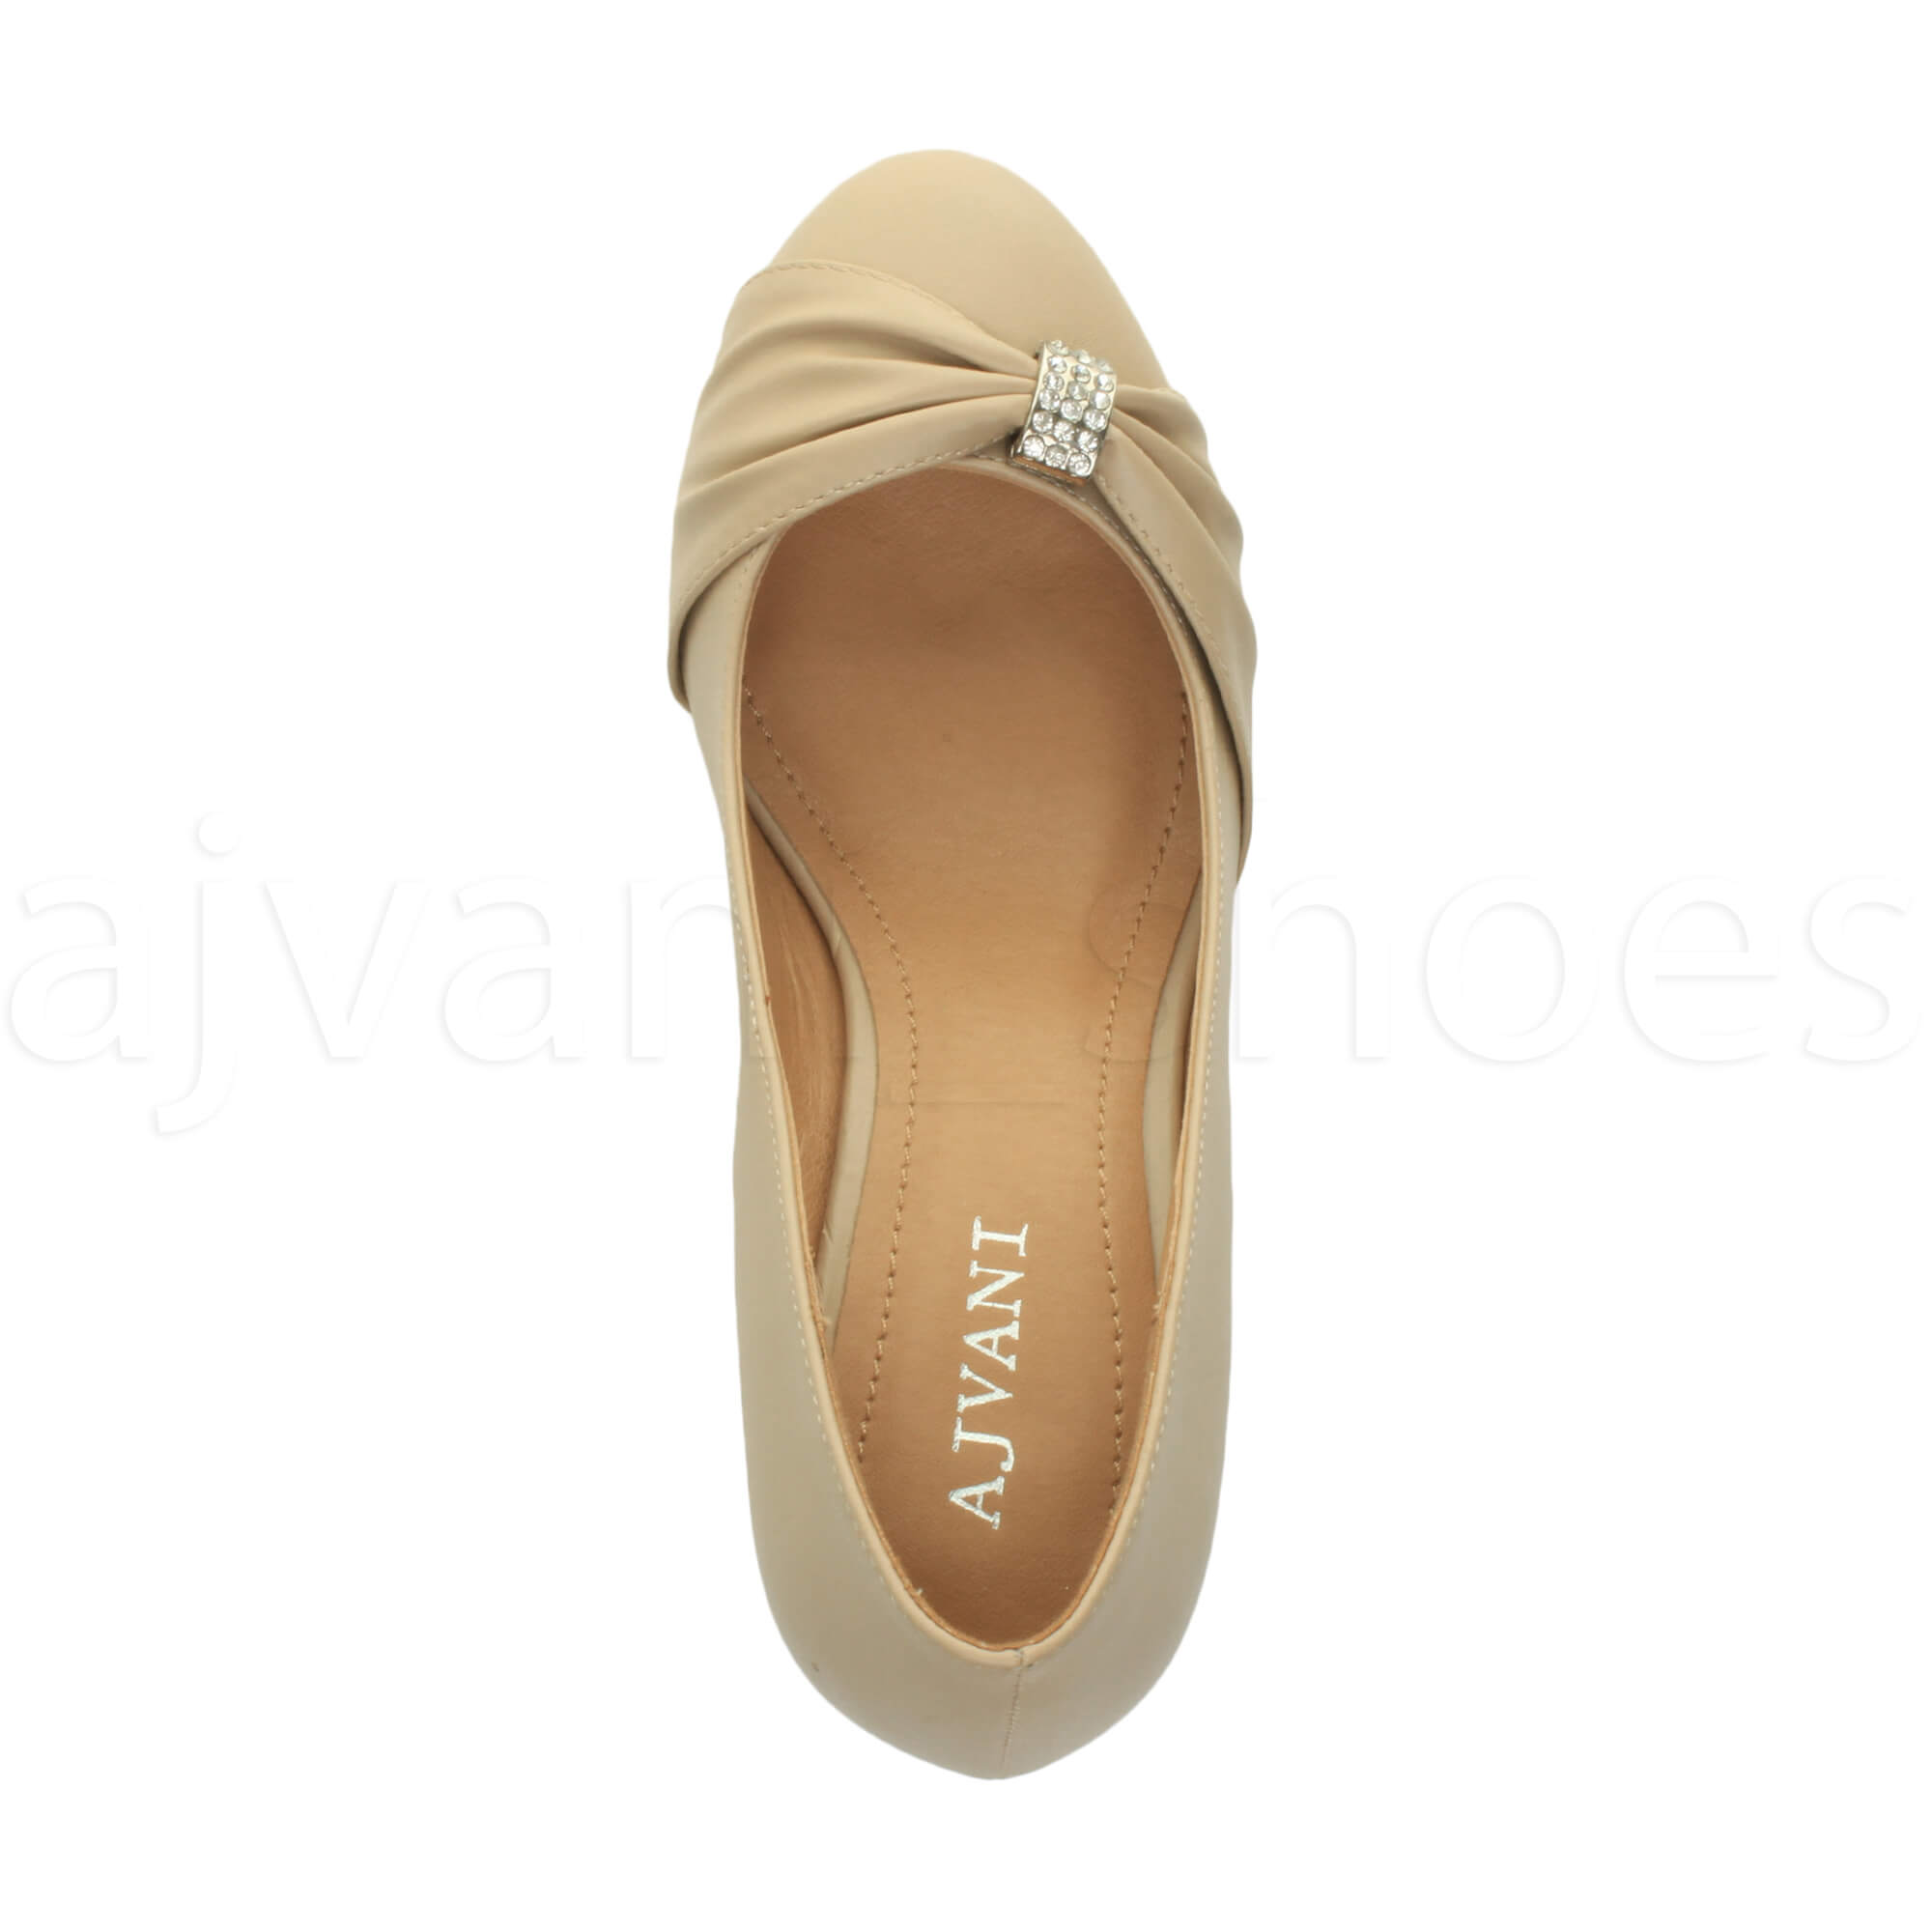 WOMENS-LADIES-MID-HEEL-RUCHED-DIAMANTE-WEDDING-PROM-EVENING-COURT-SHOES-SIZE thumbnail 64